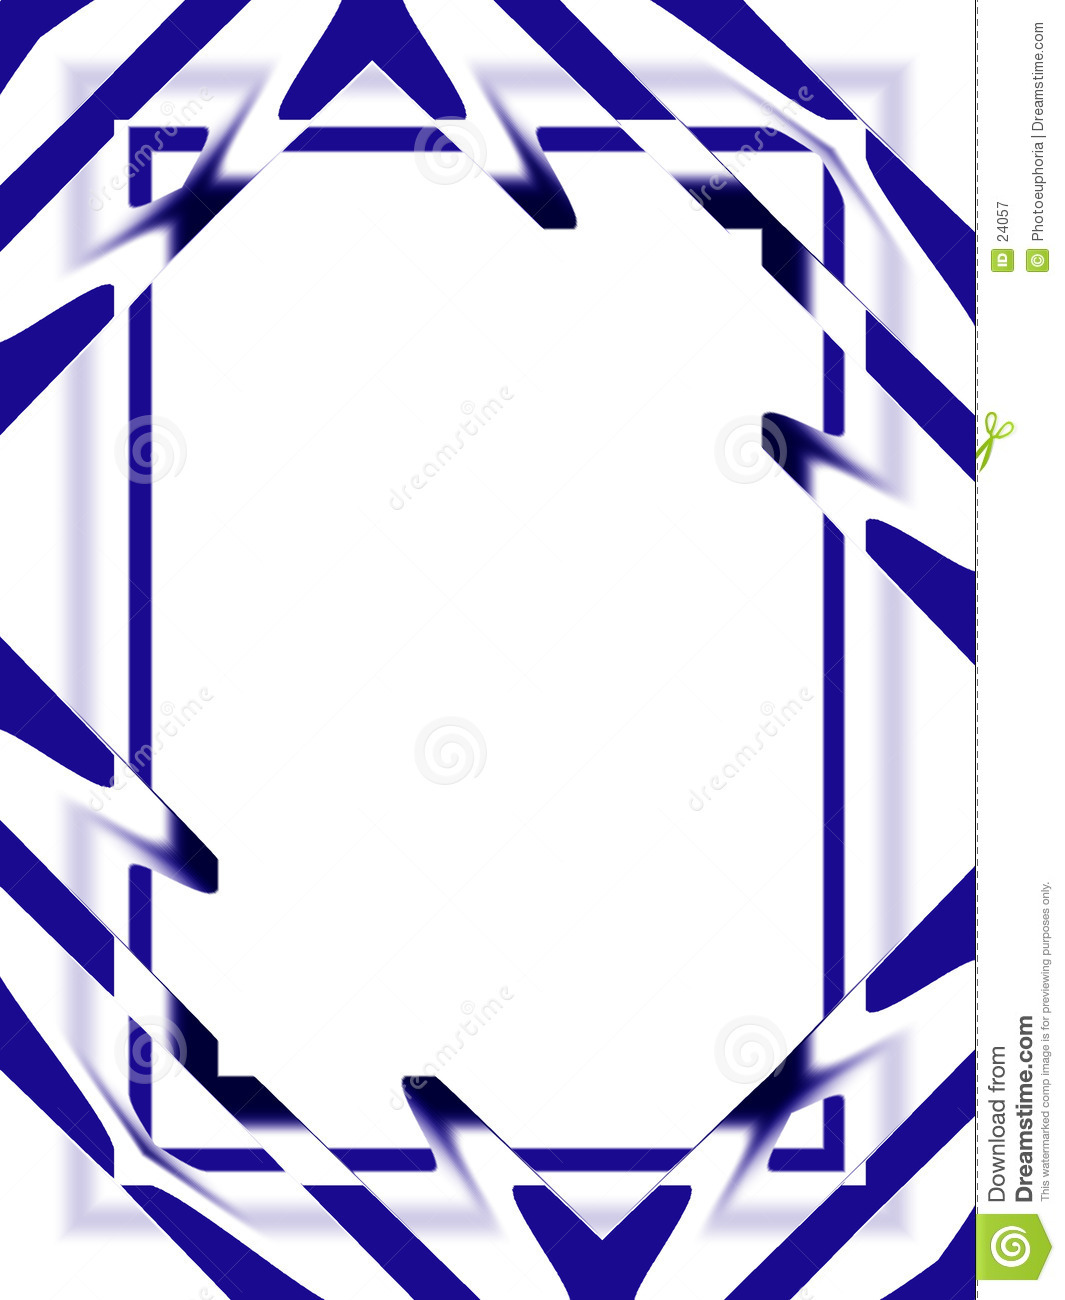 Background: Abstract Blue